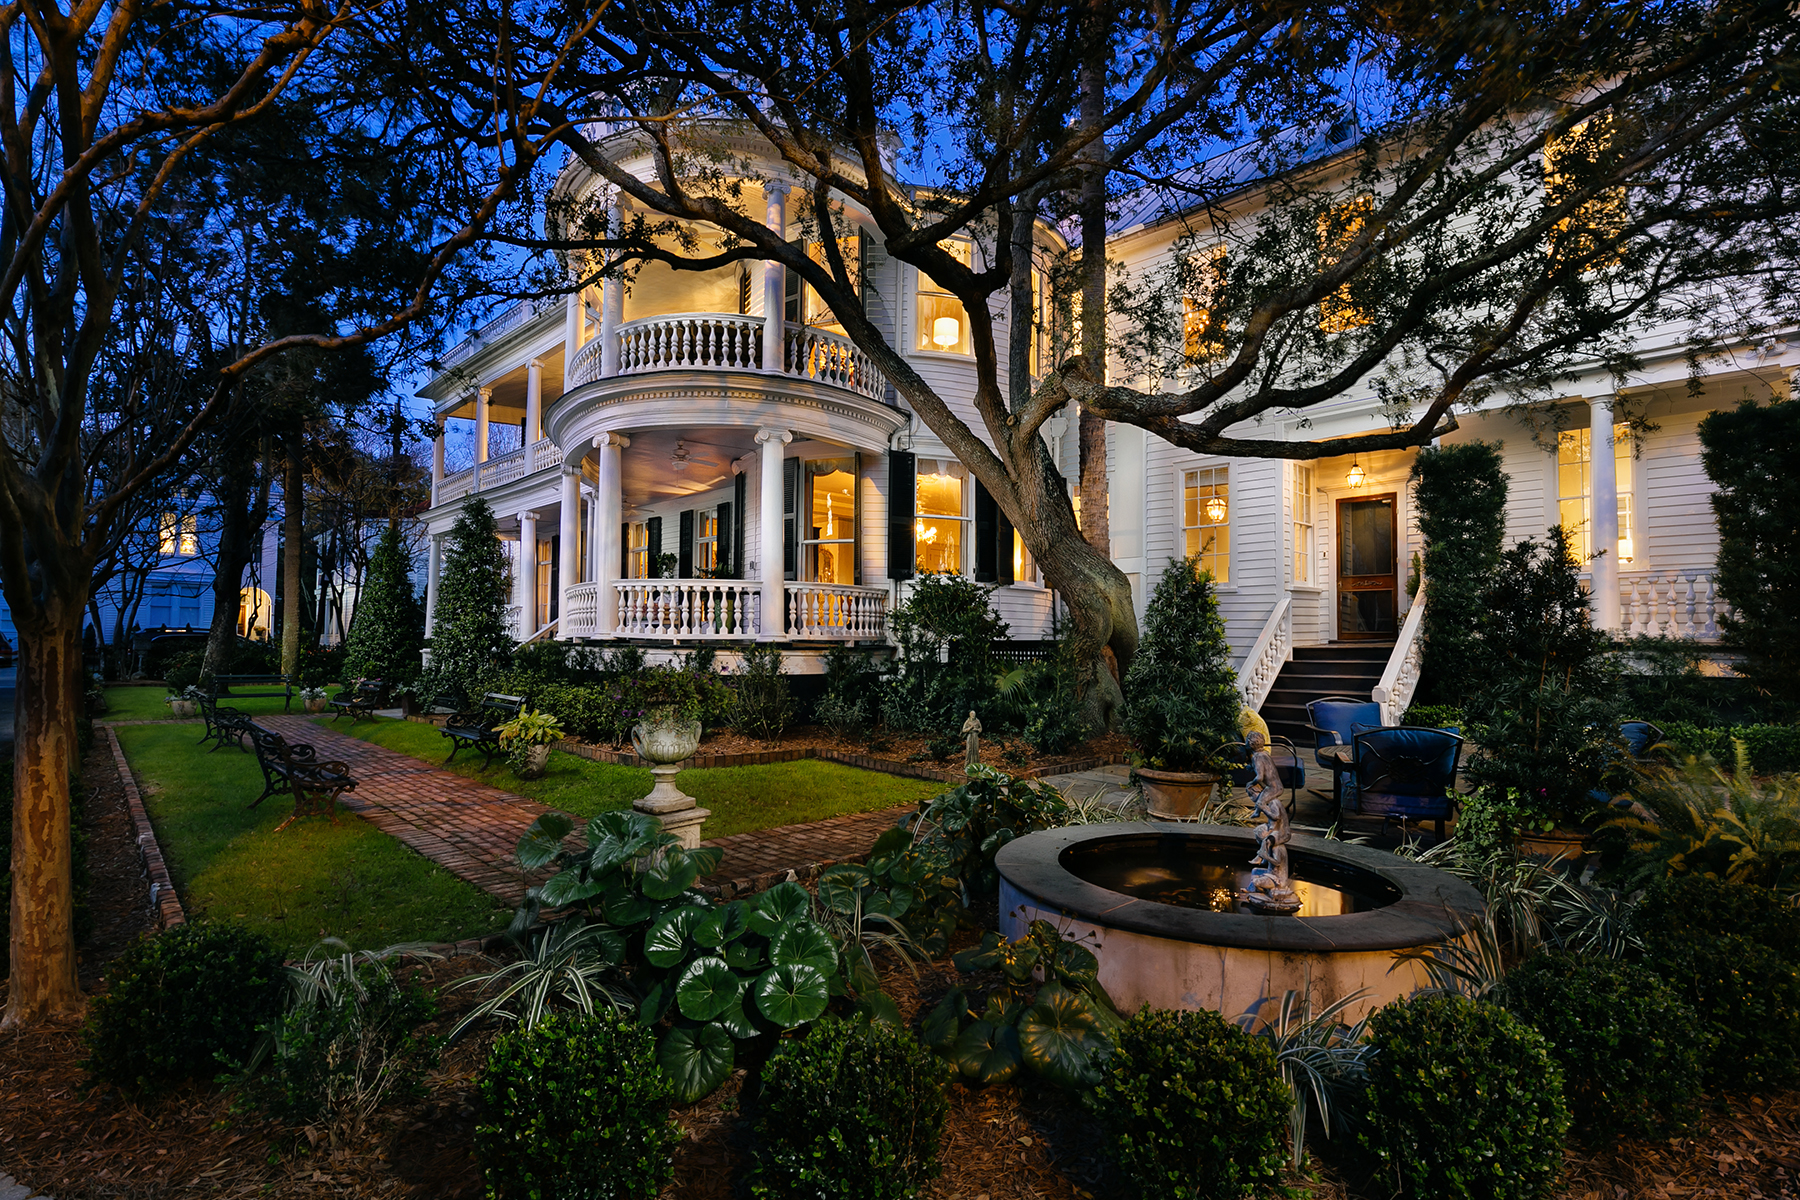 Single Family Homes for Sale at 173 Broad Street Charleston, South Carolina 29401 United States